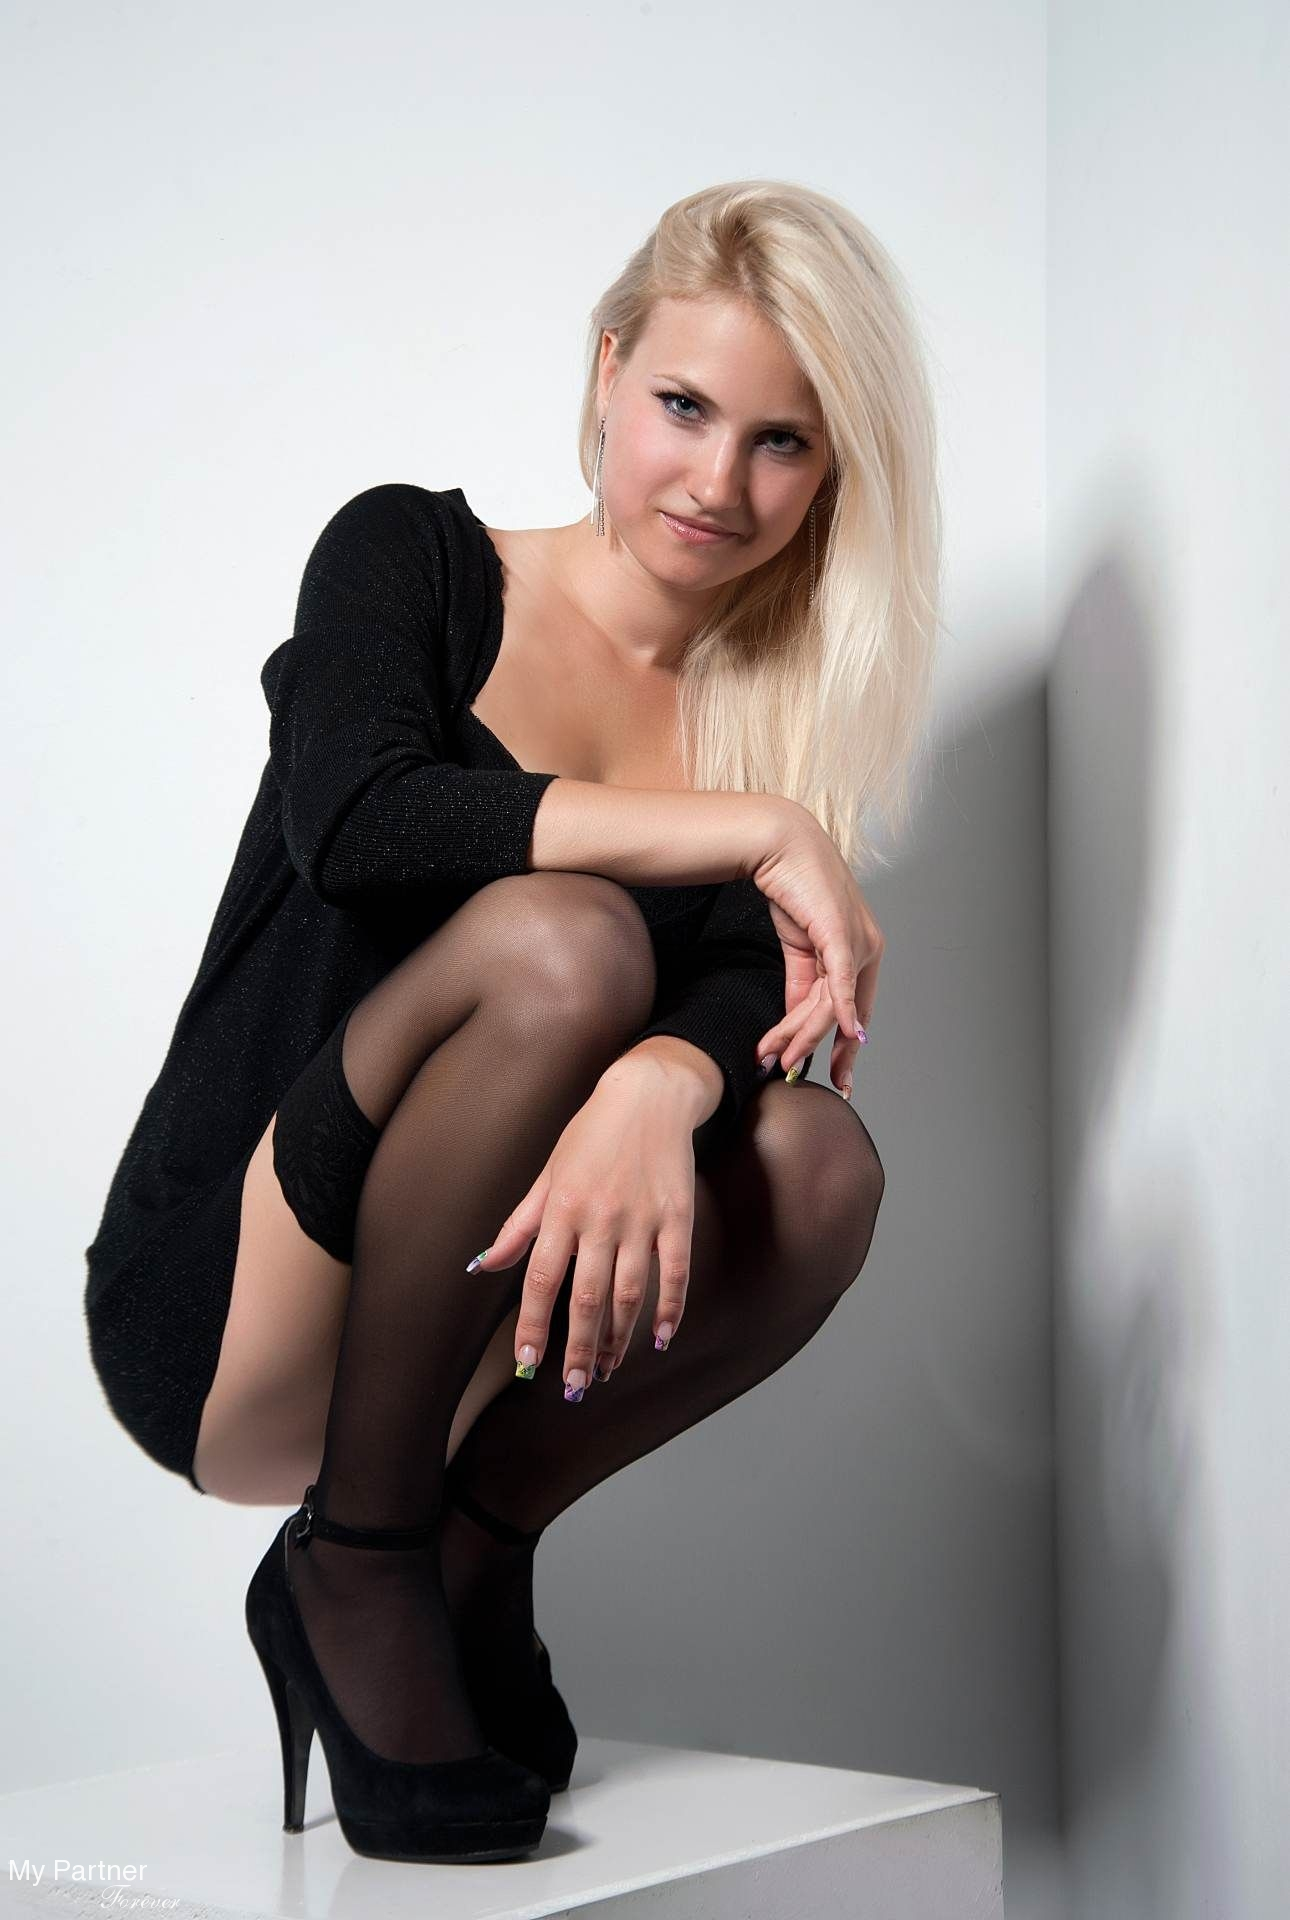 single lesbian women in poland 100% free online dating in hamilton 1,500,000 daily active members.